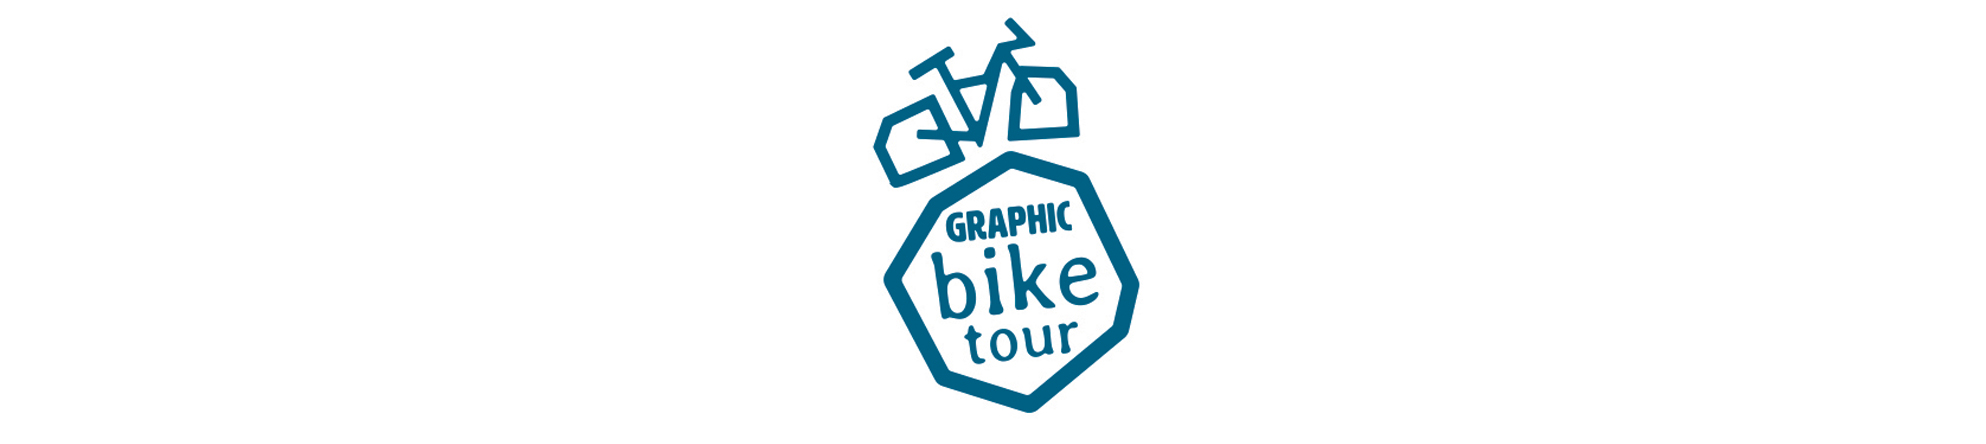 graphic bike tour.jpg